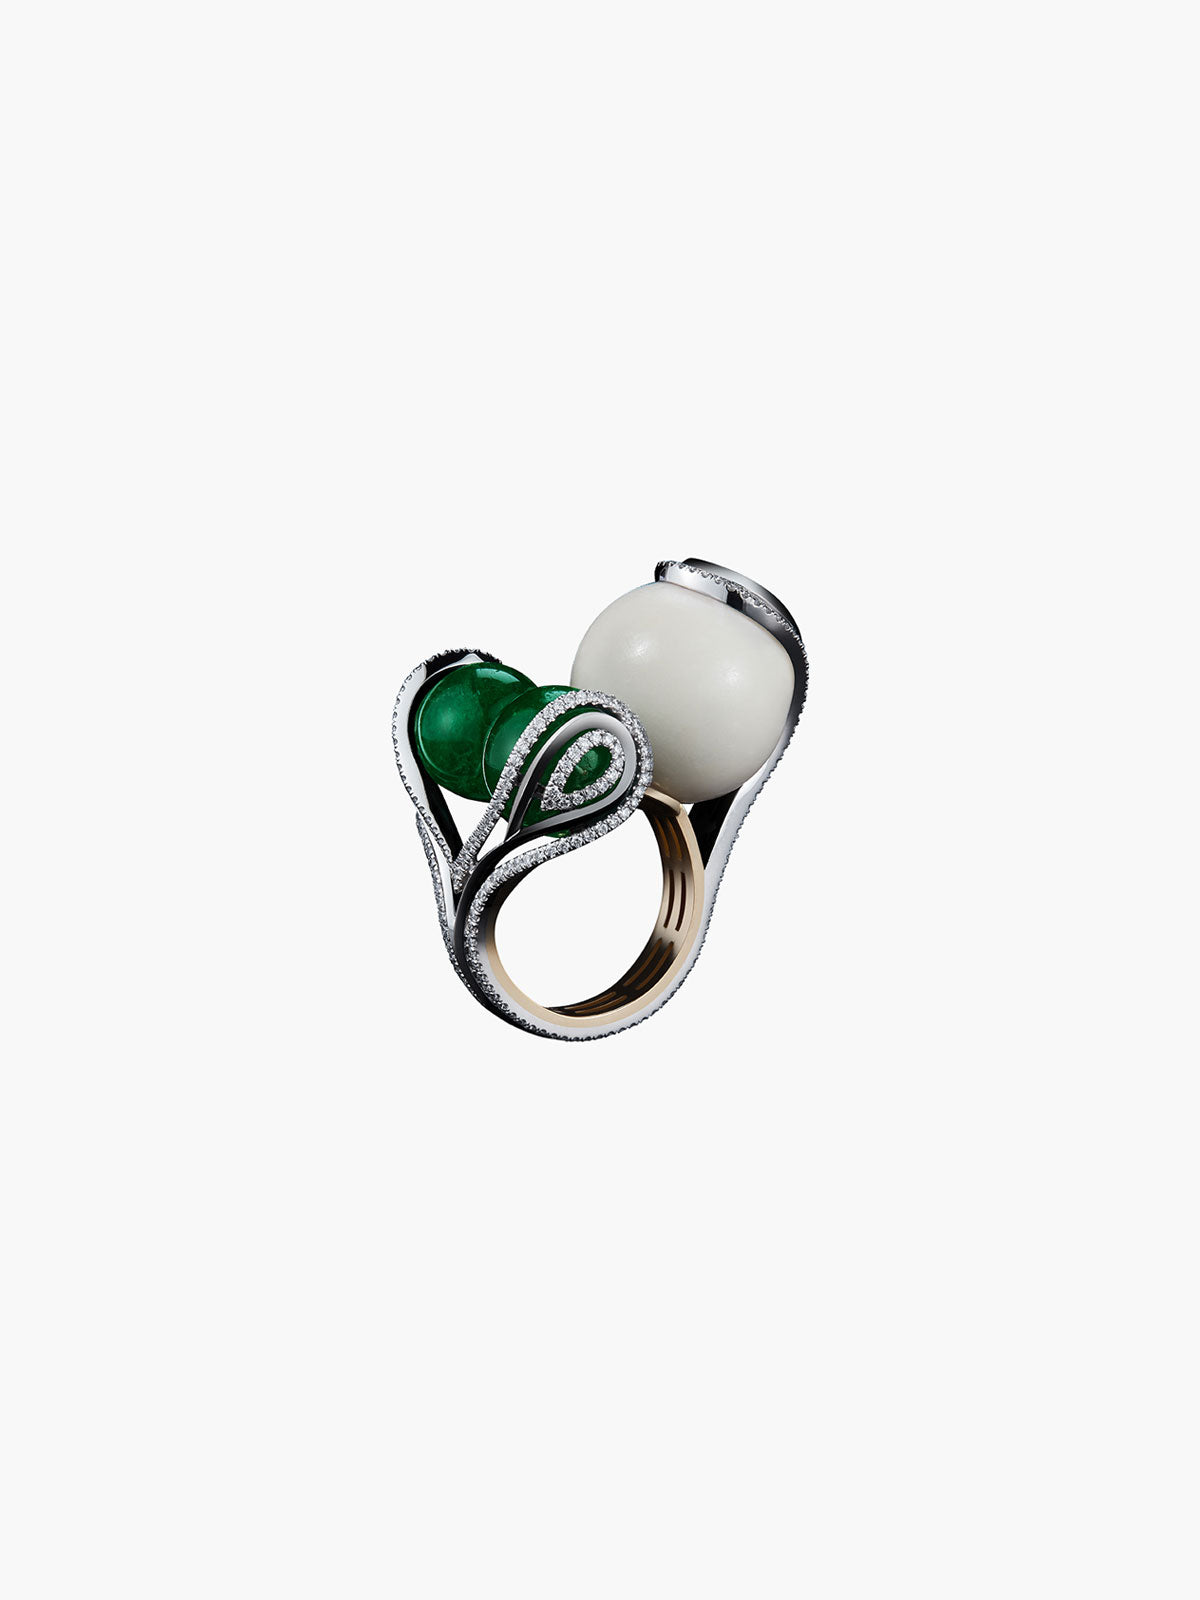 Tagua Seed & Emerald Sphere Ring Tagua Seed & Emerald Sphere Ring